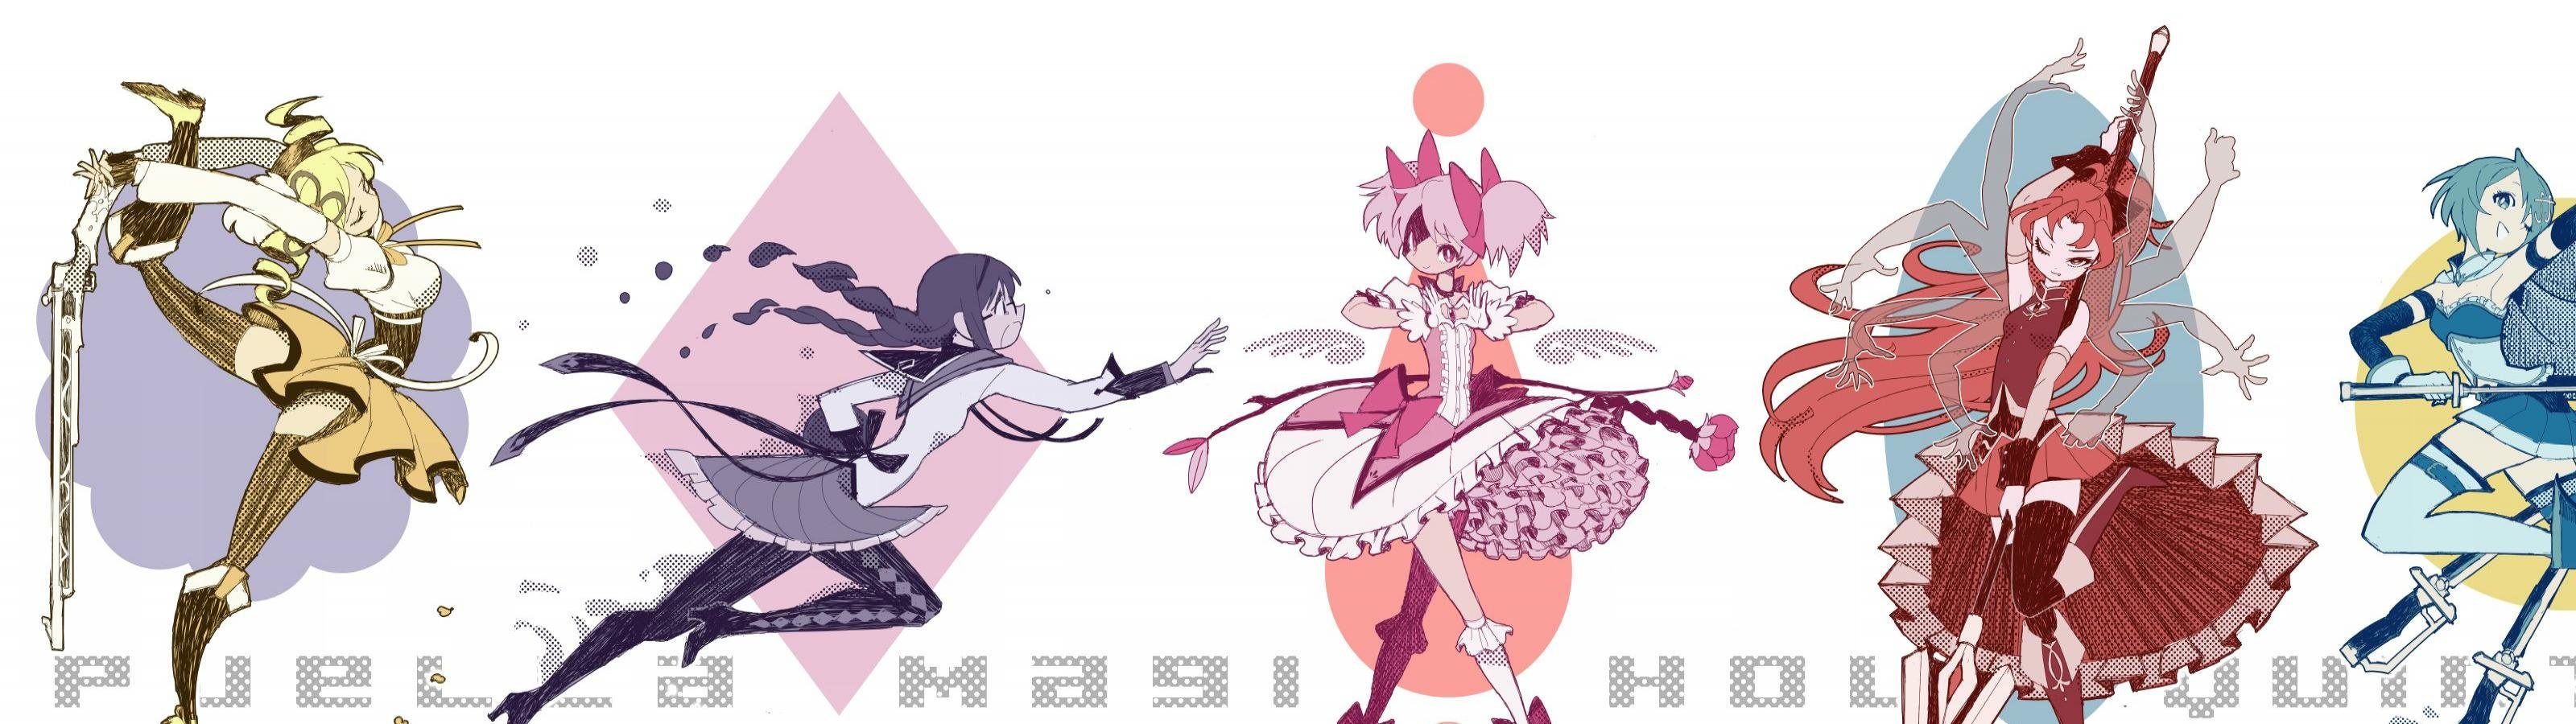 Free download Puella Magi Madoka Magica background ID:32379 dual monitor 3200x900 for computer